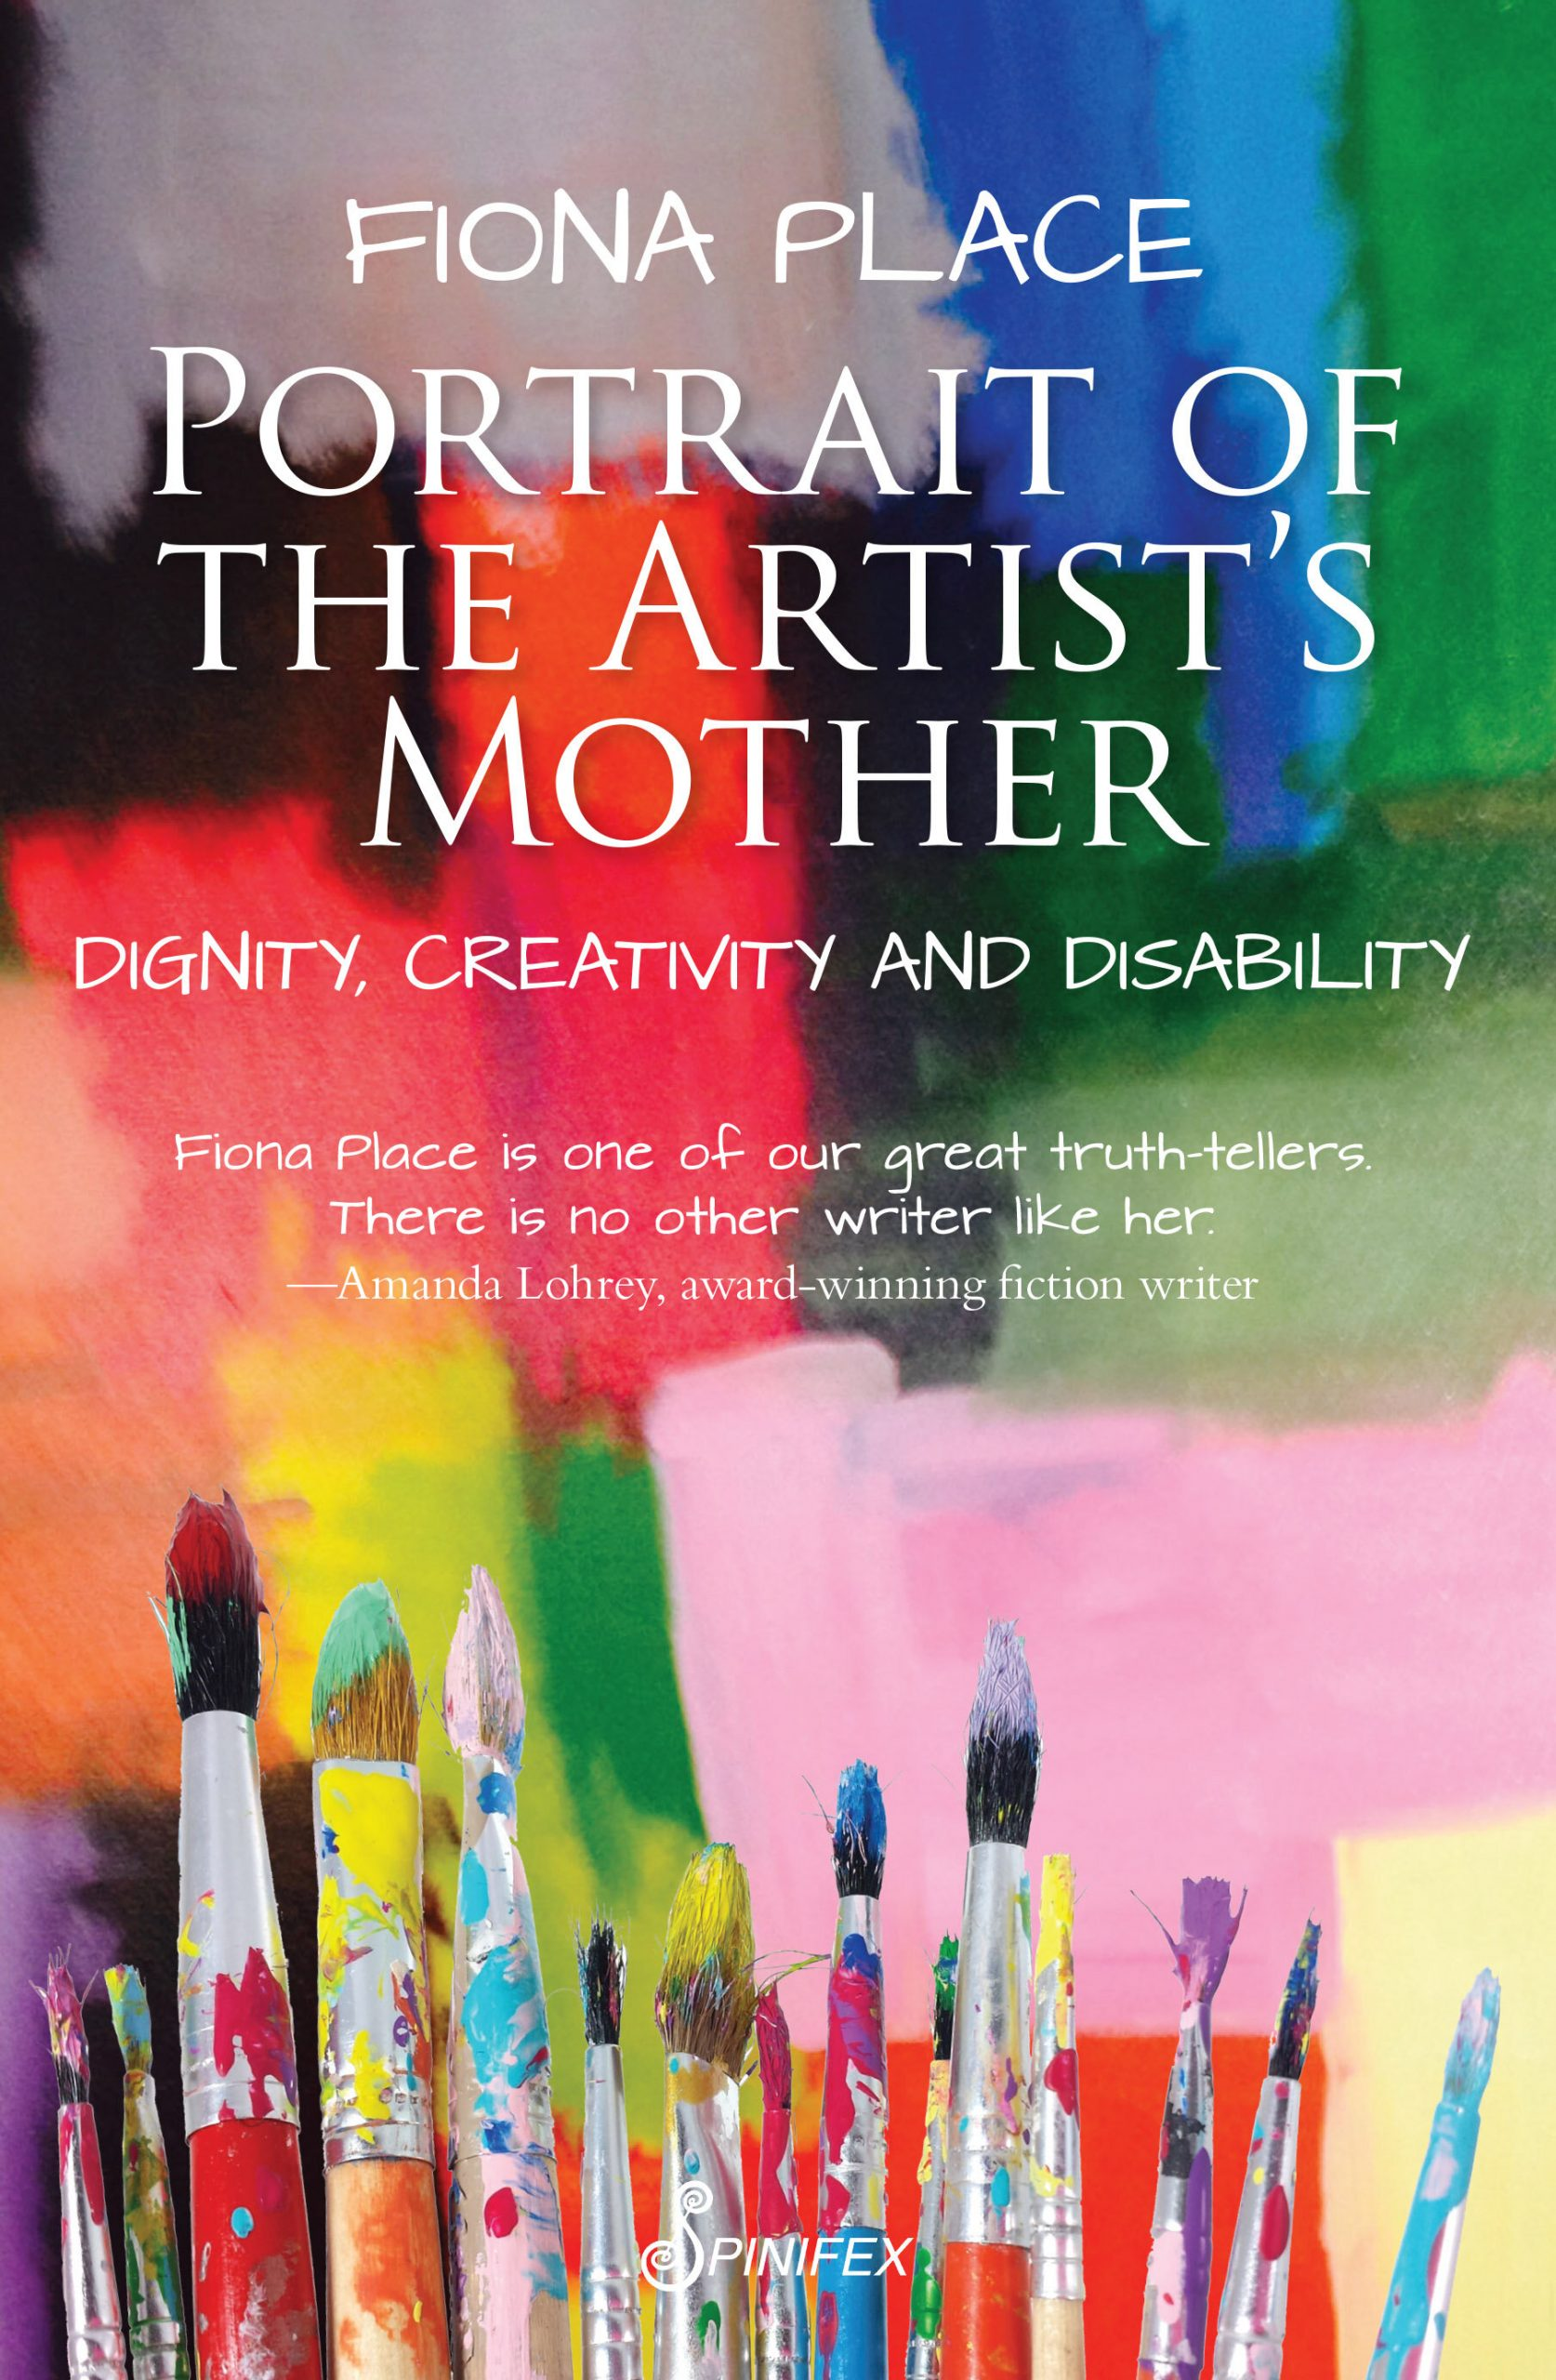 Portrait of the Artist's Mother: Dignity, Creativity and Disability